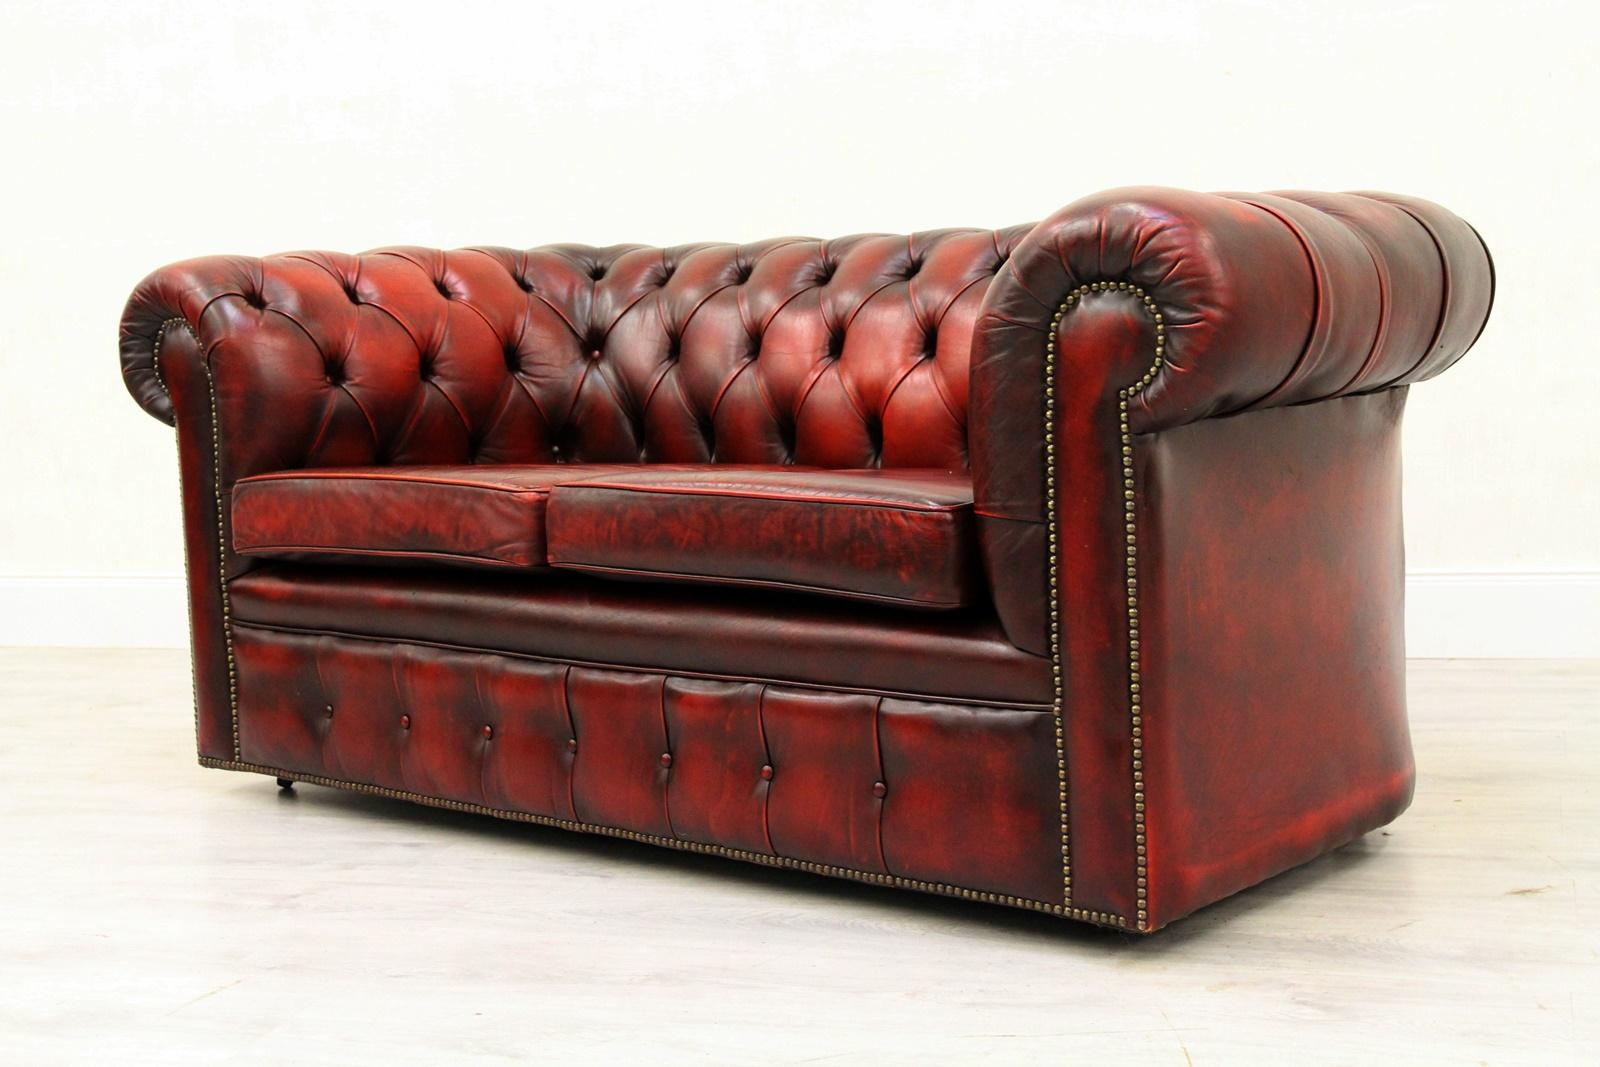 3er Couch 3 Seat 2 Seat Chesterfield Sofa Leather Antique Couch English Real Leather